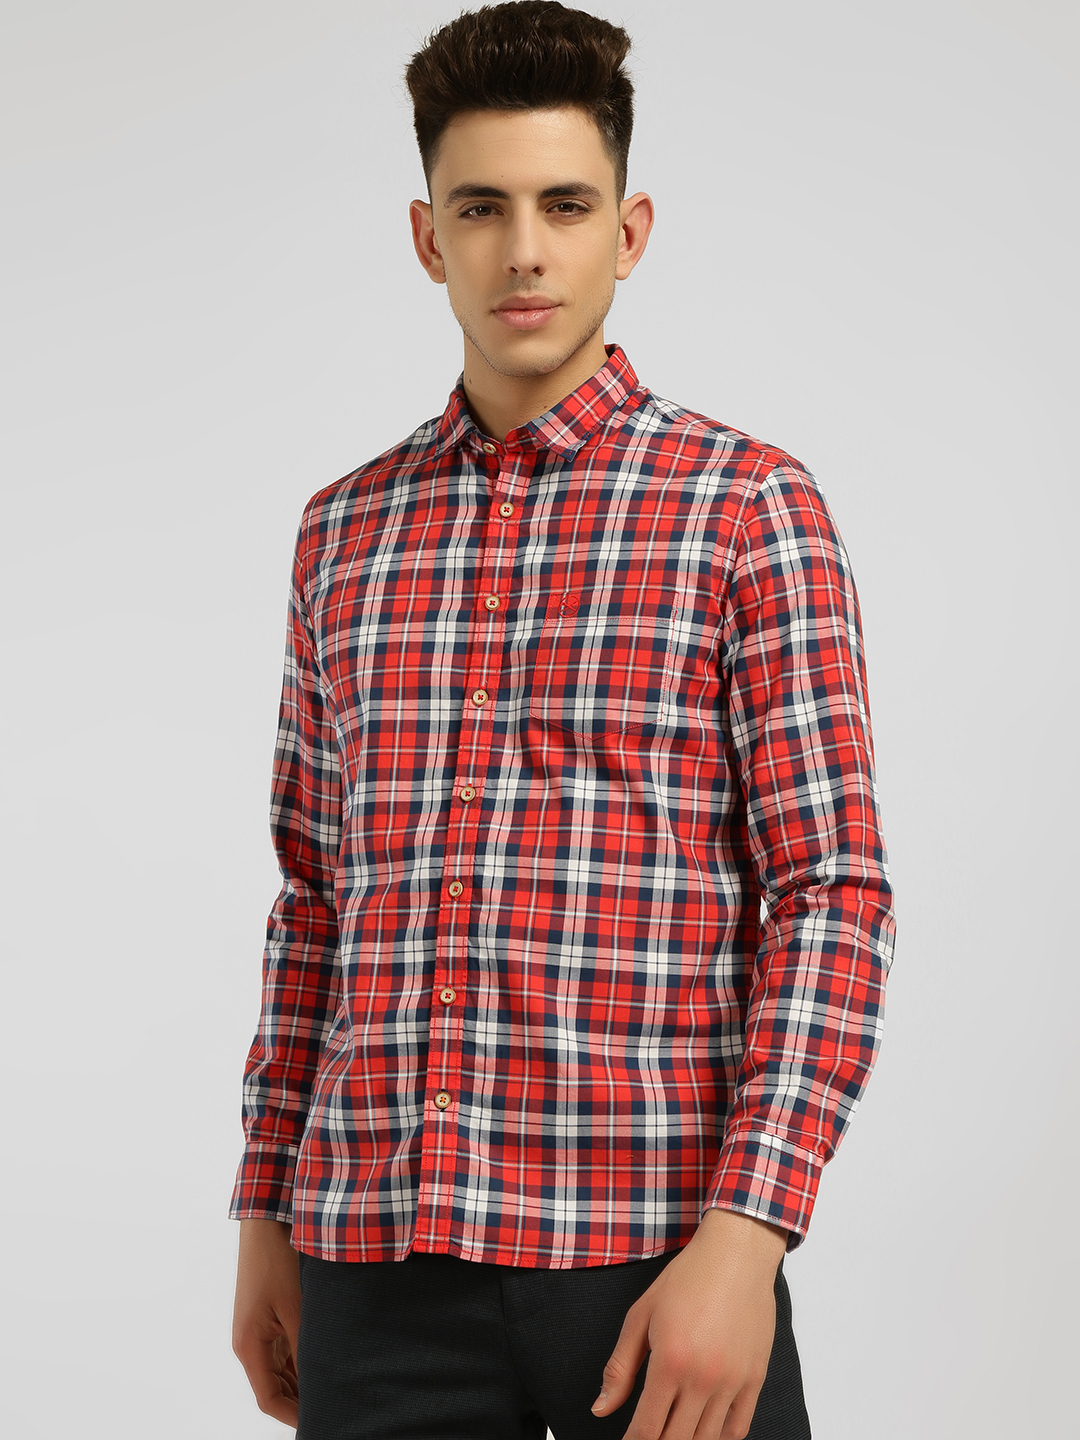 SCULLERS Red Plaid Check Casual Shirt 1